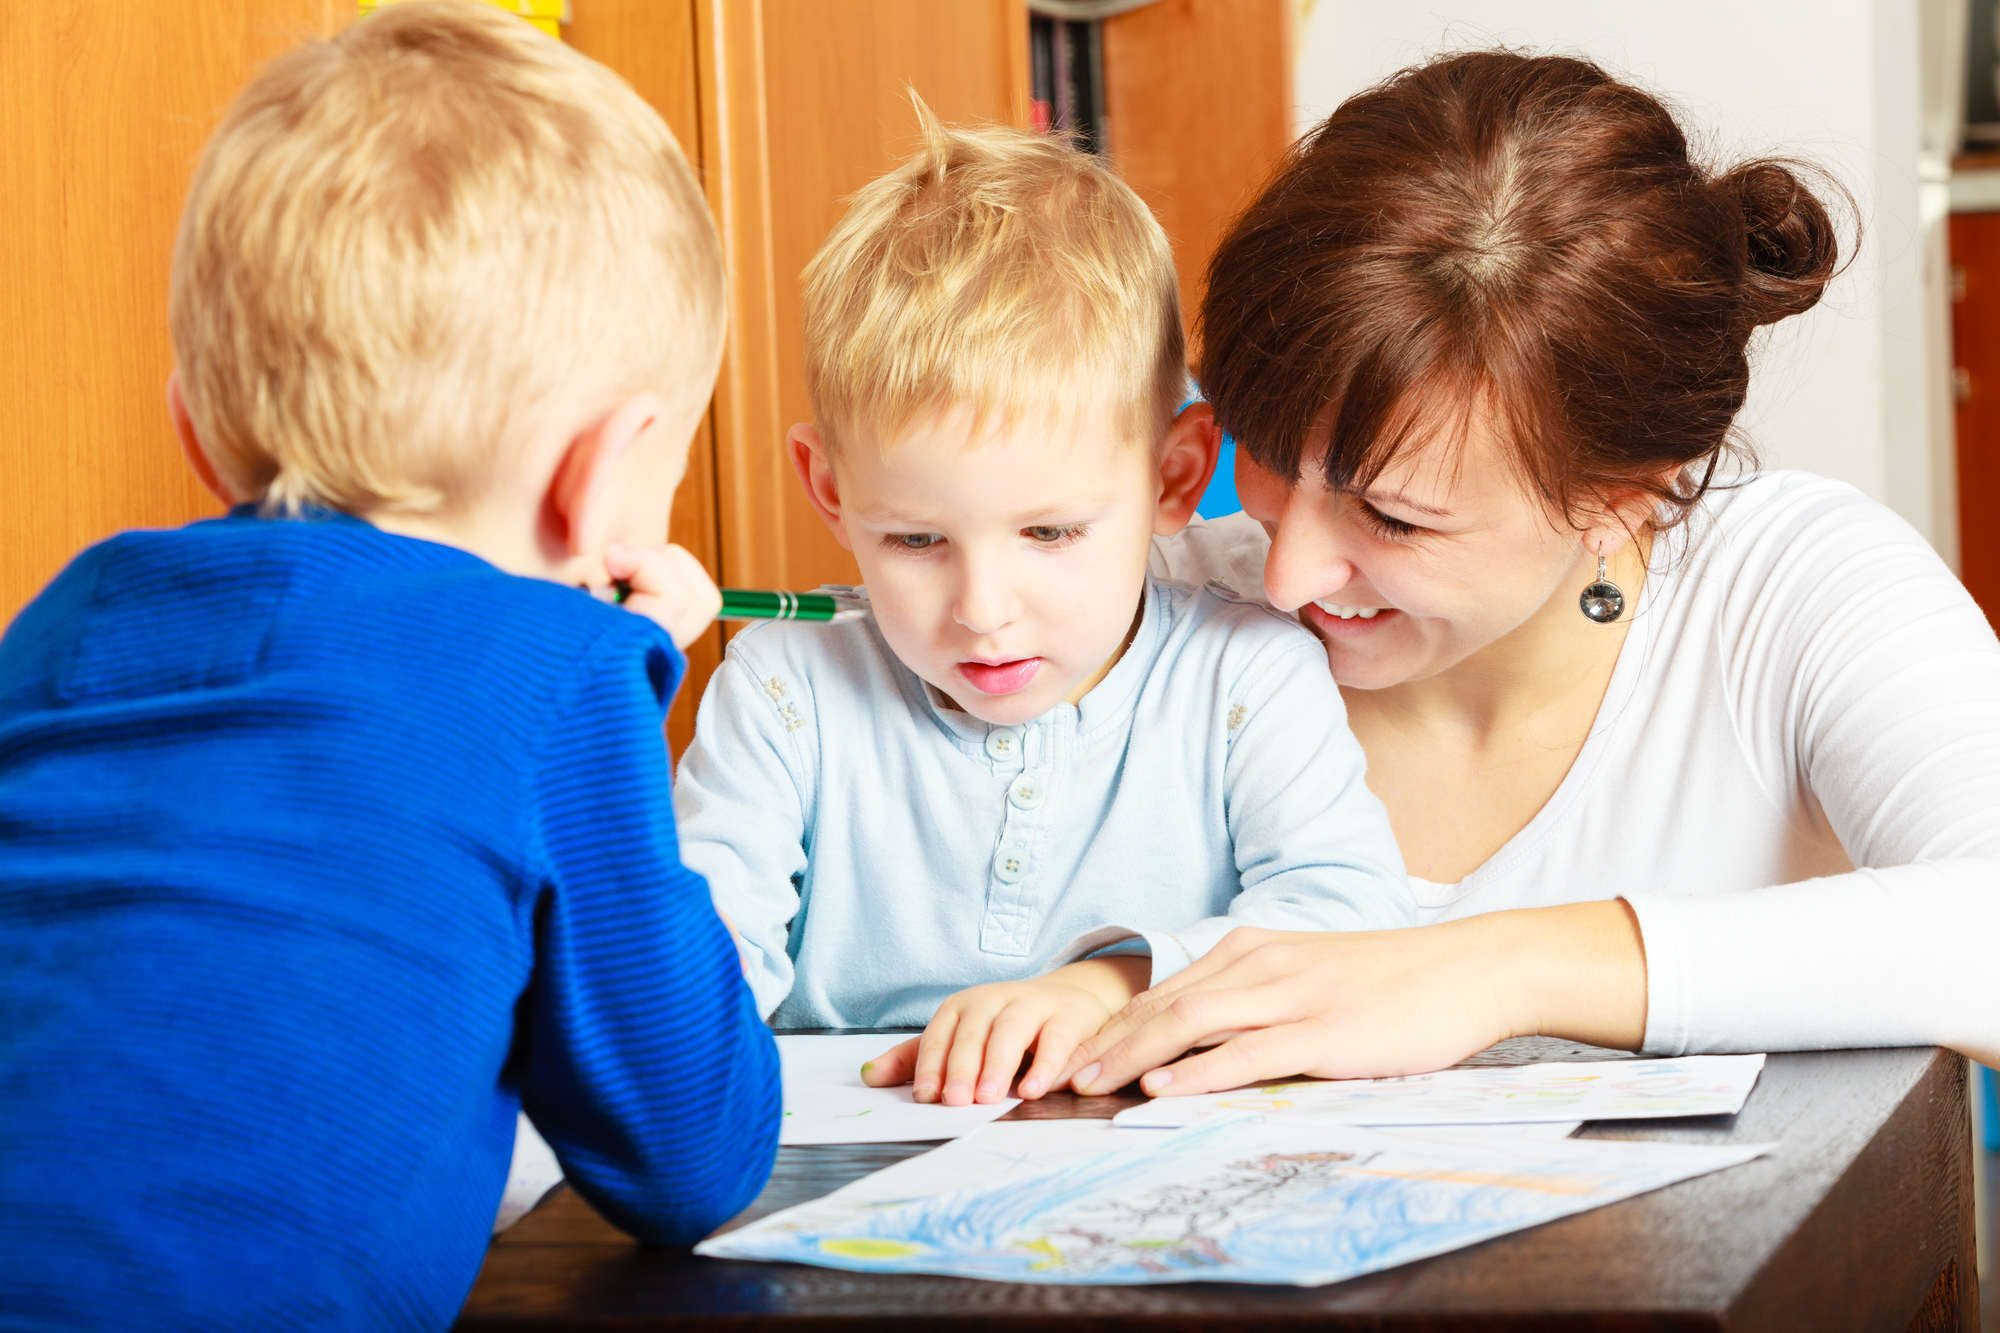 Effective Teaching Strategies to Use at Home With Small Children